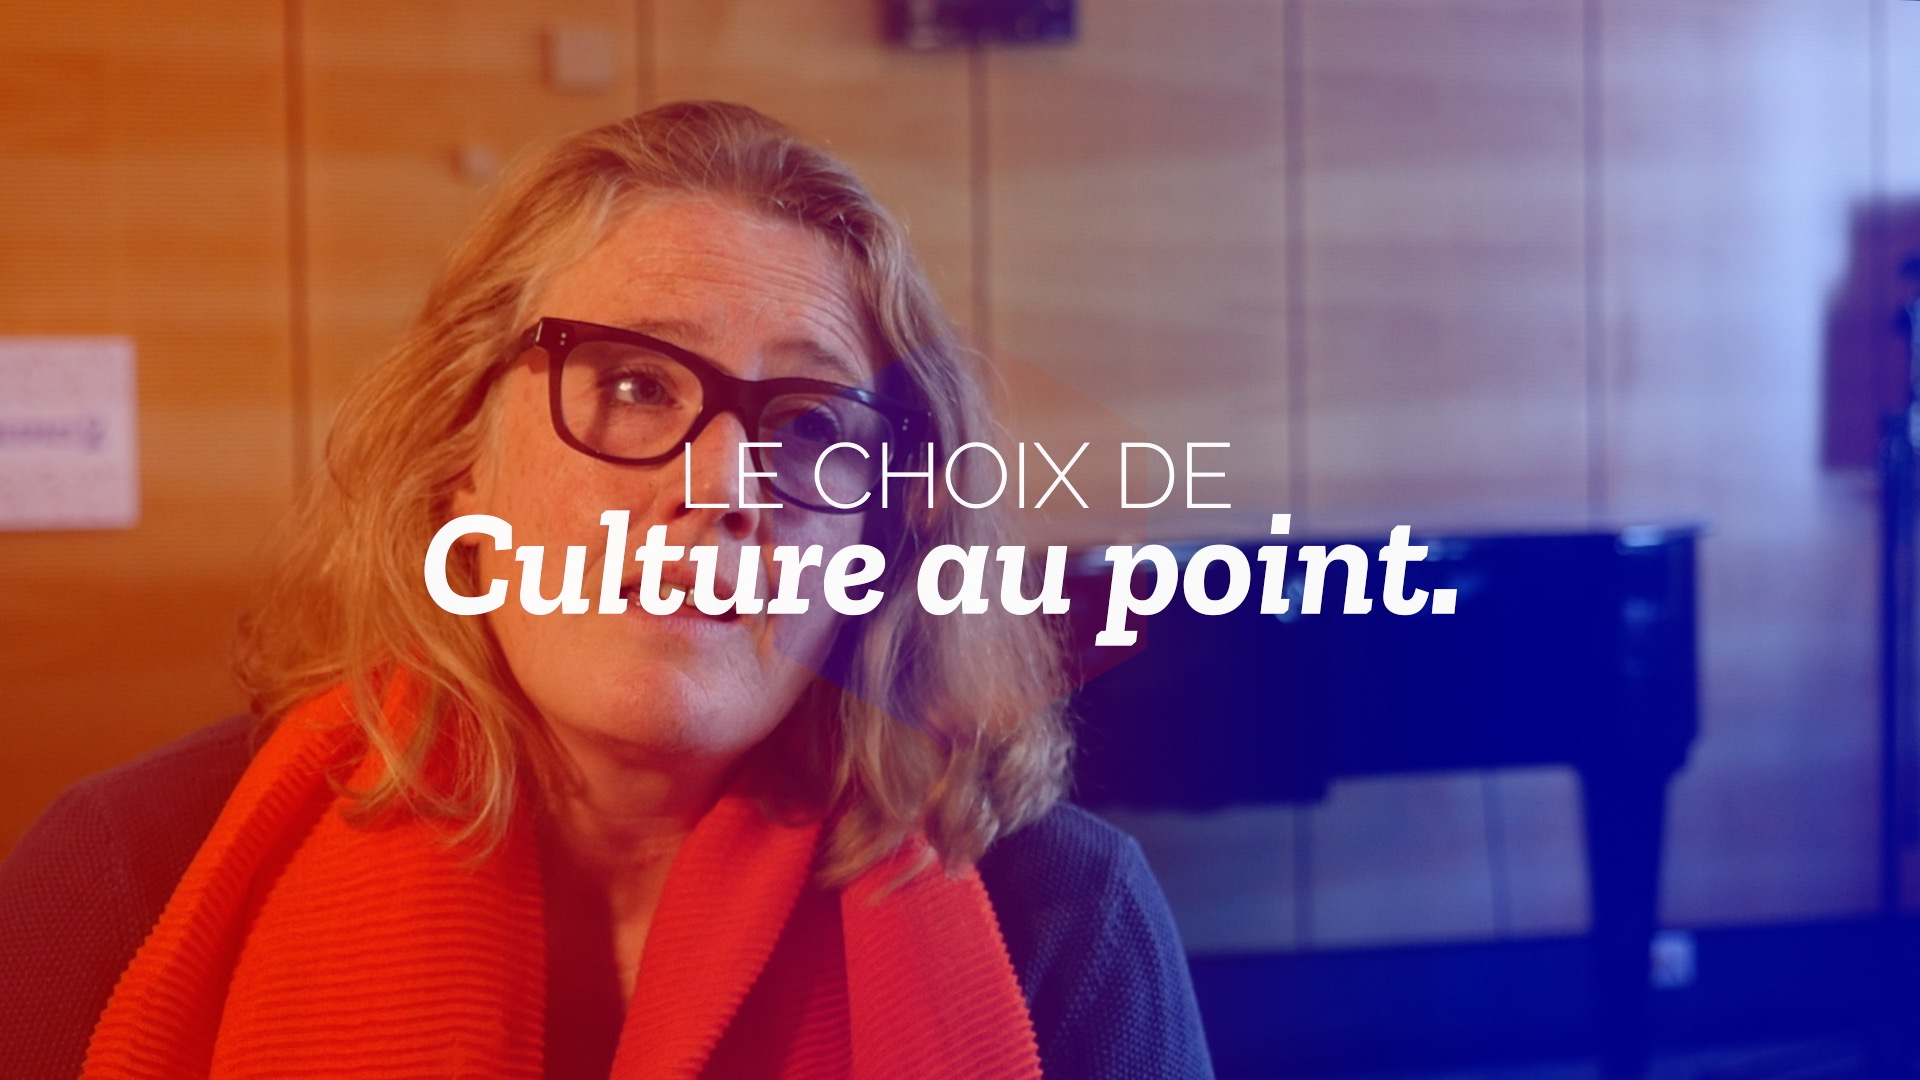 Vignette du Choix de Culture au Point du 5.10.2018.